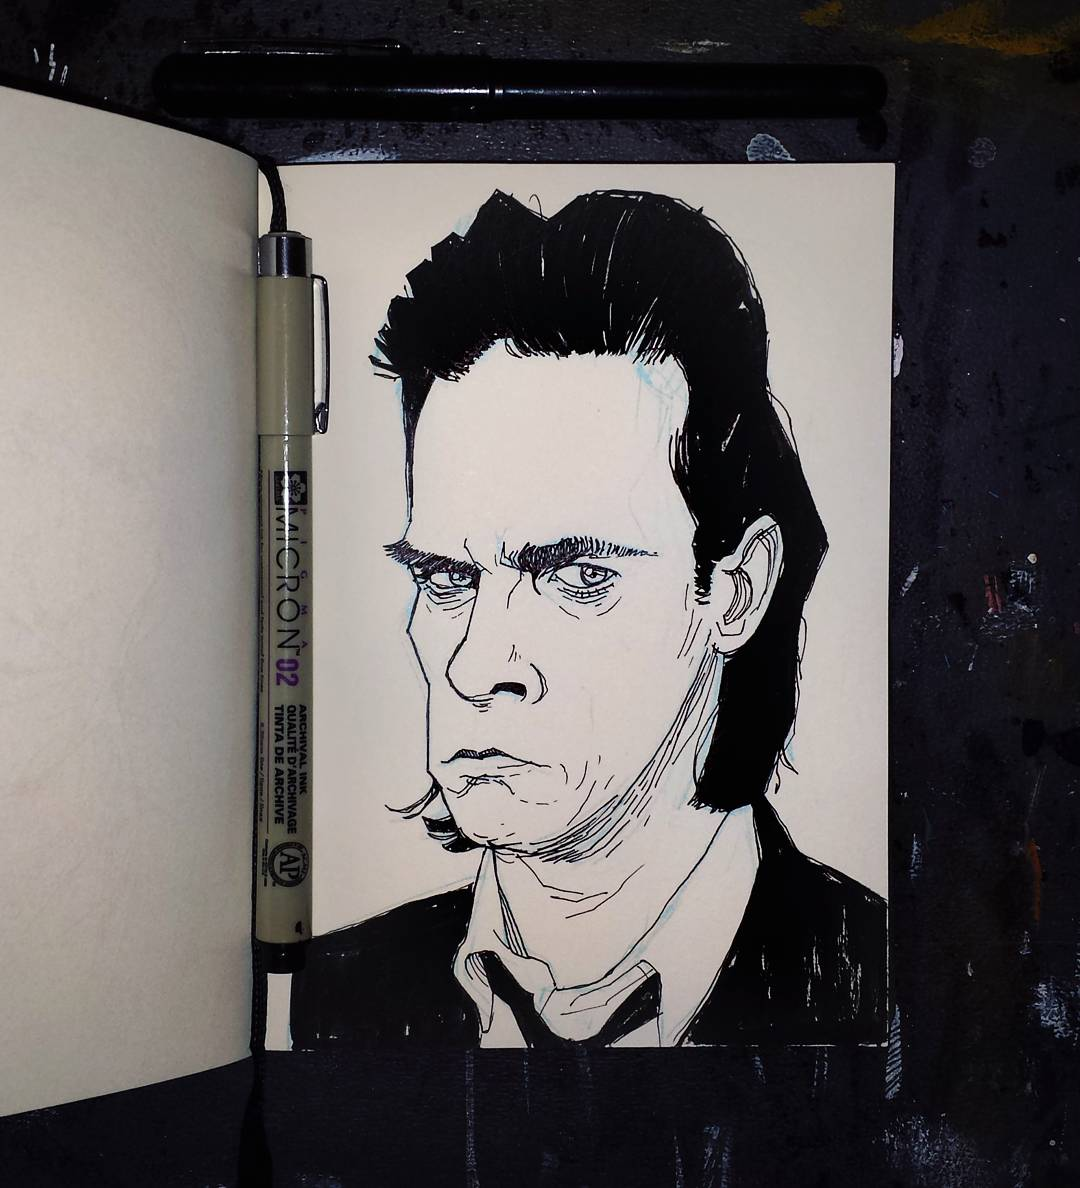 Nick Cave portrait illustration